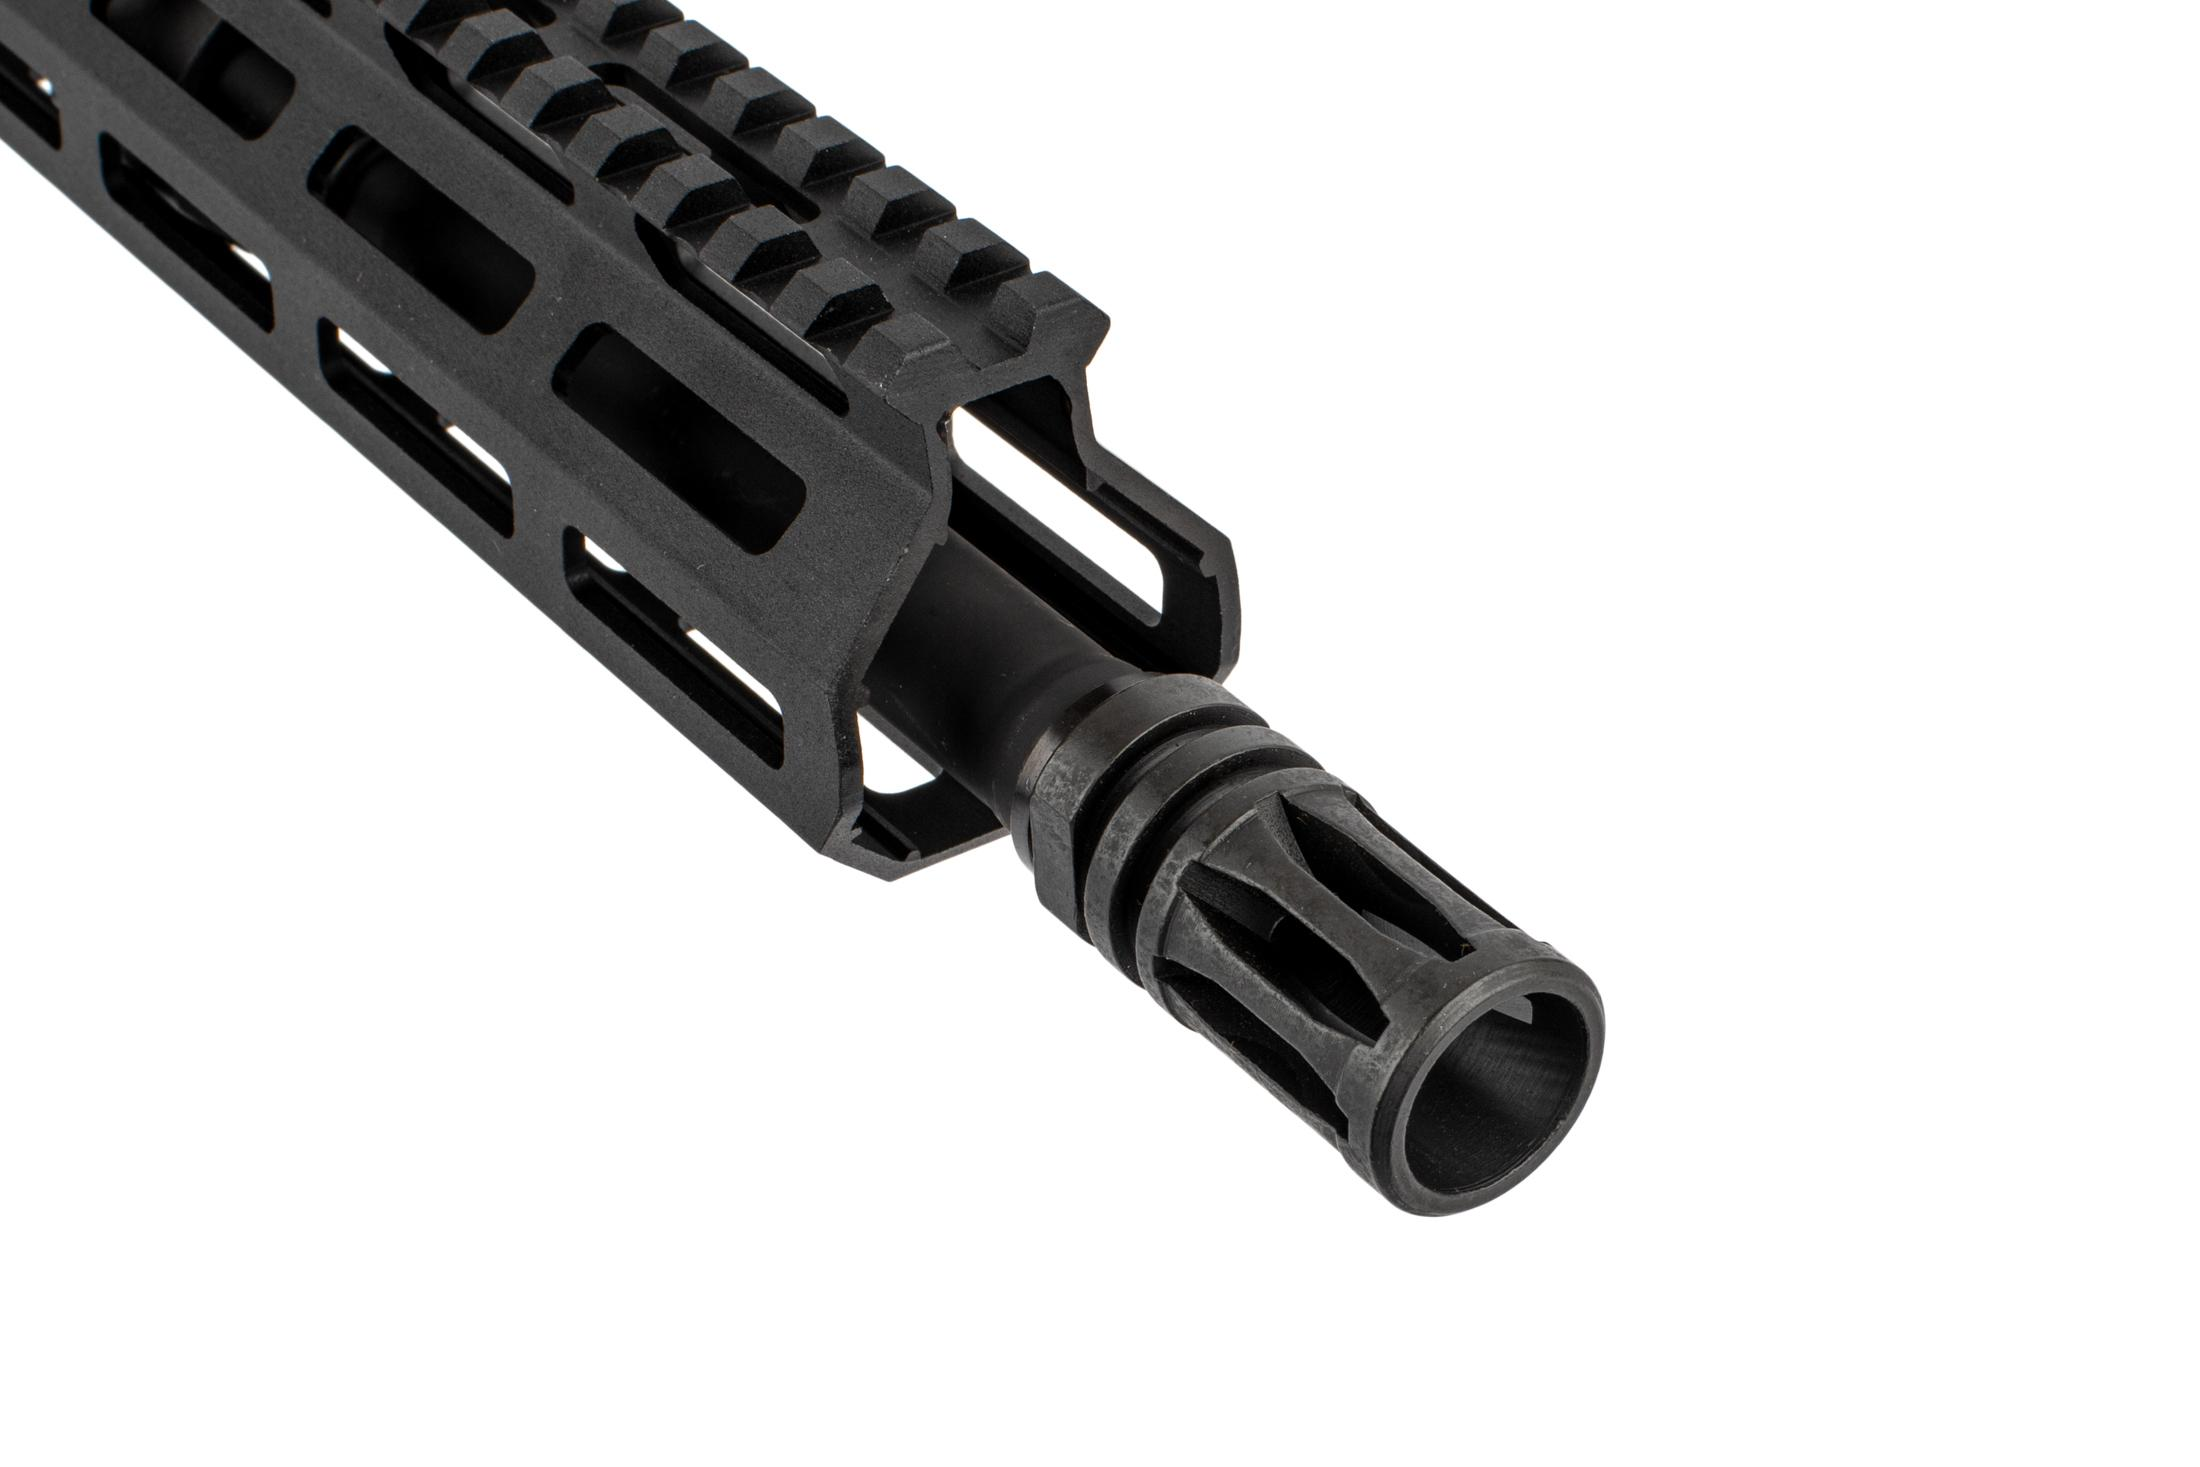 The Del Ton Sierra AR-15 316L complete rifle comes with an A2 flash hider